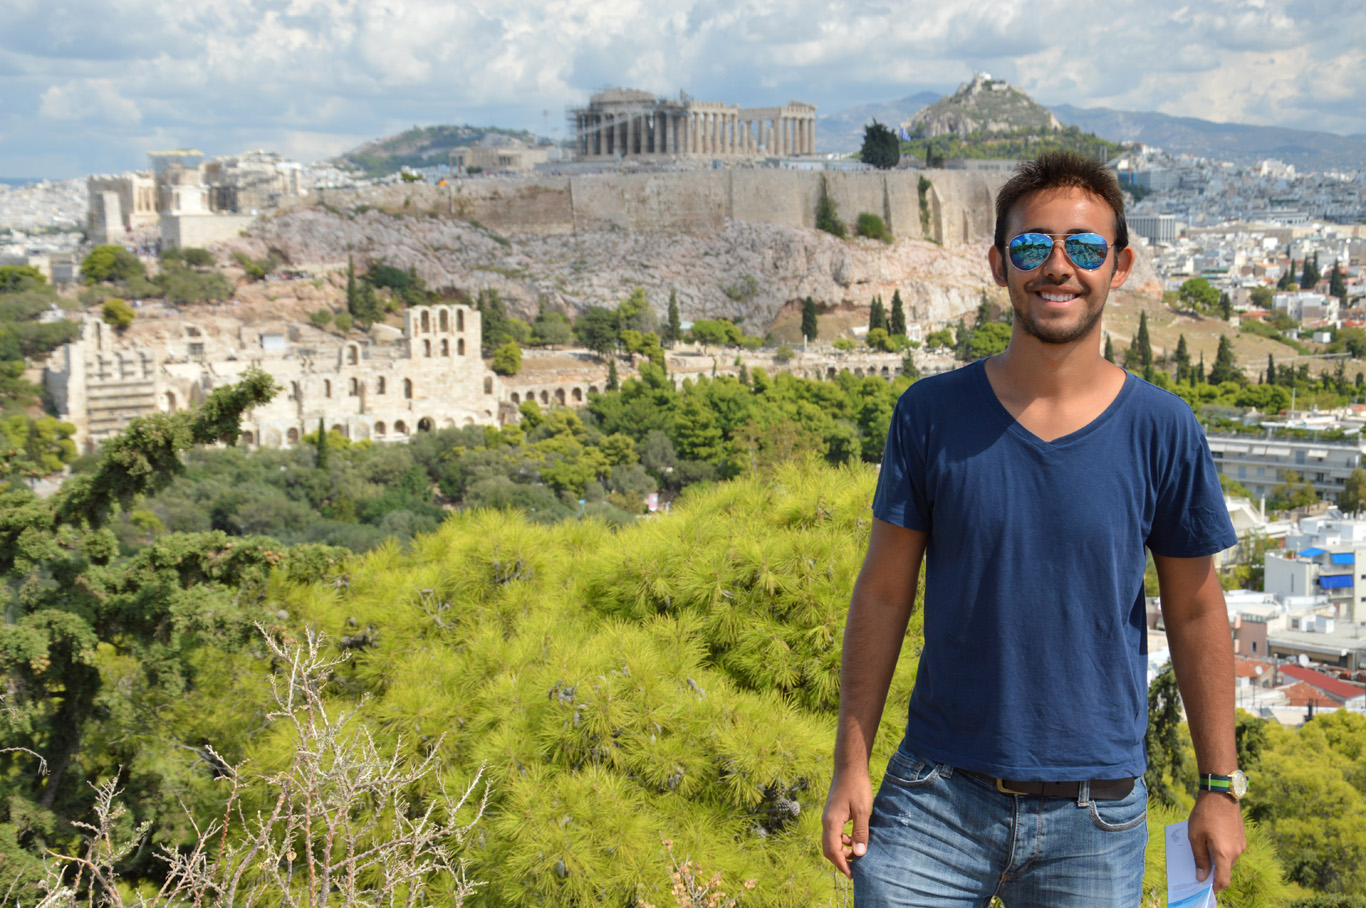 With Acropolis in the background